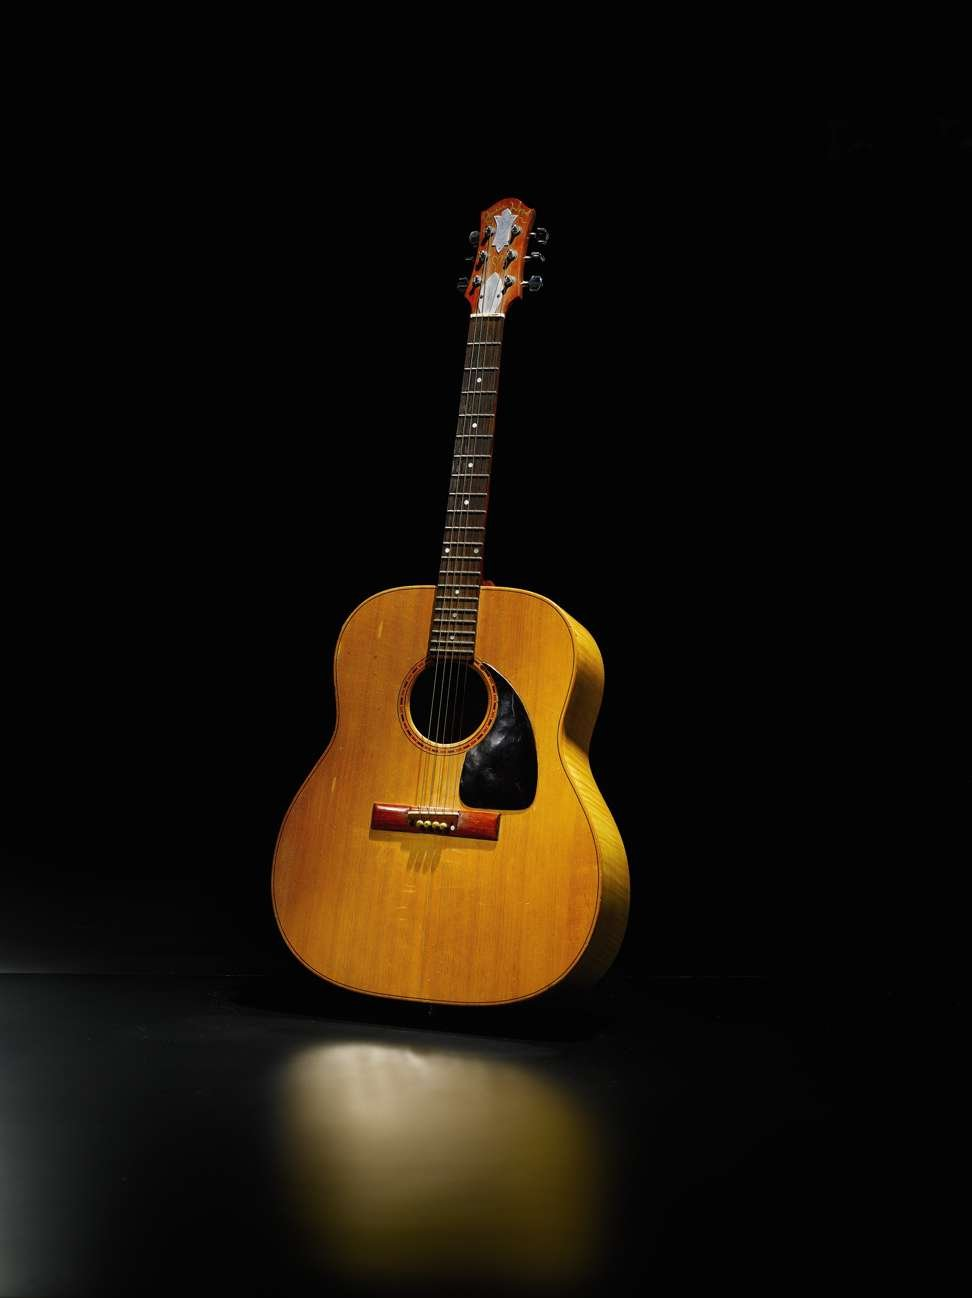 9160 Ronnie Wood Zemaitis Acoustic Guitar Played For Decades By Lot 129 Photo From Sothebys